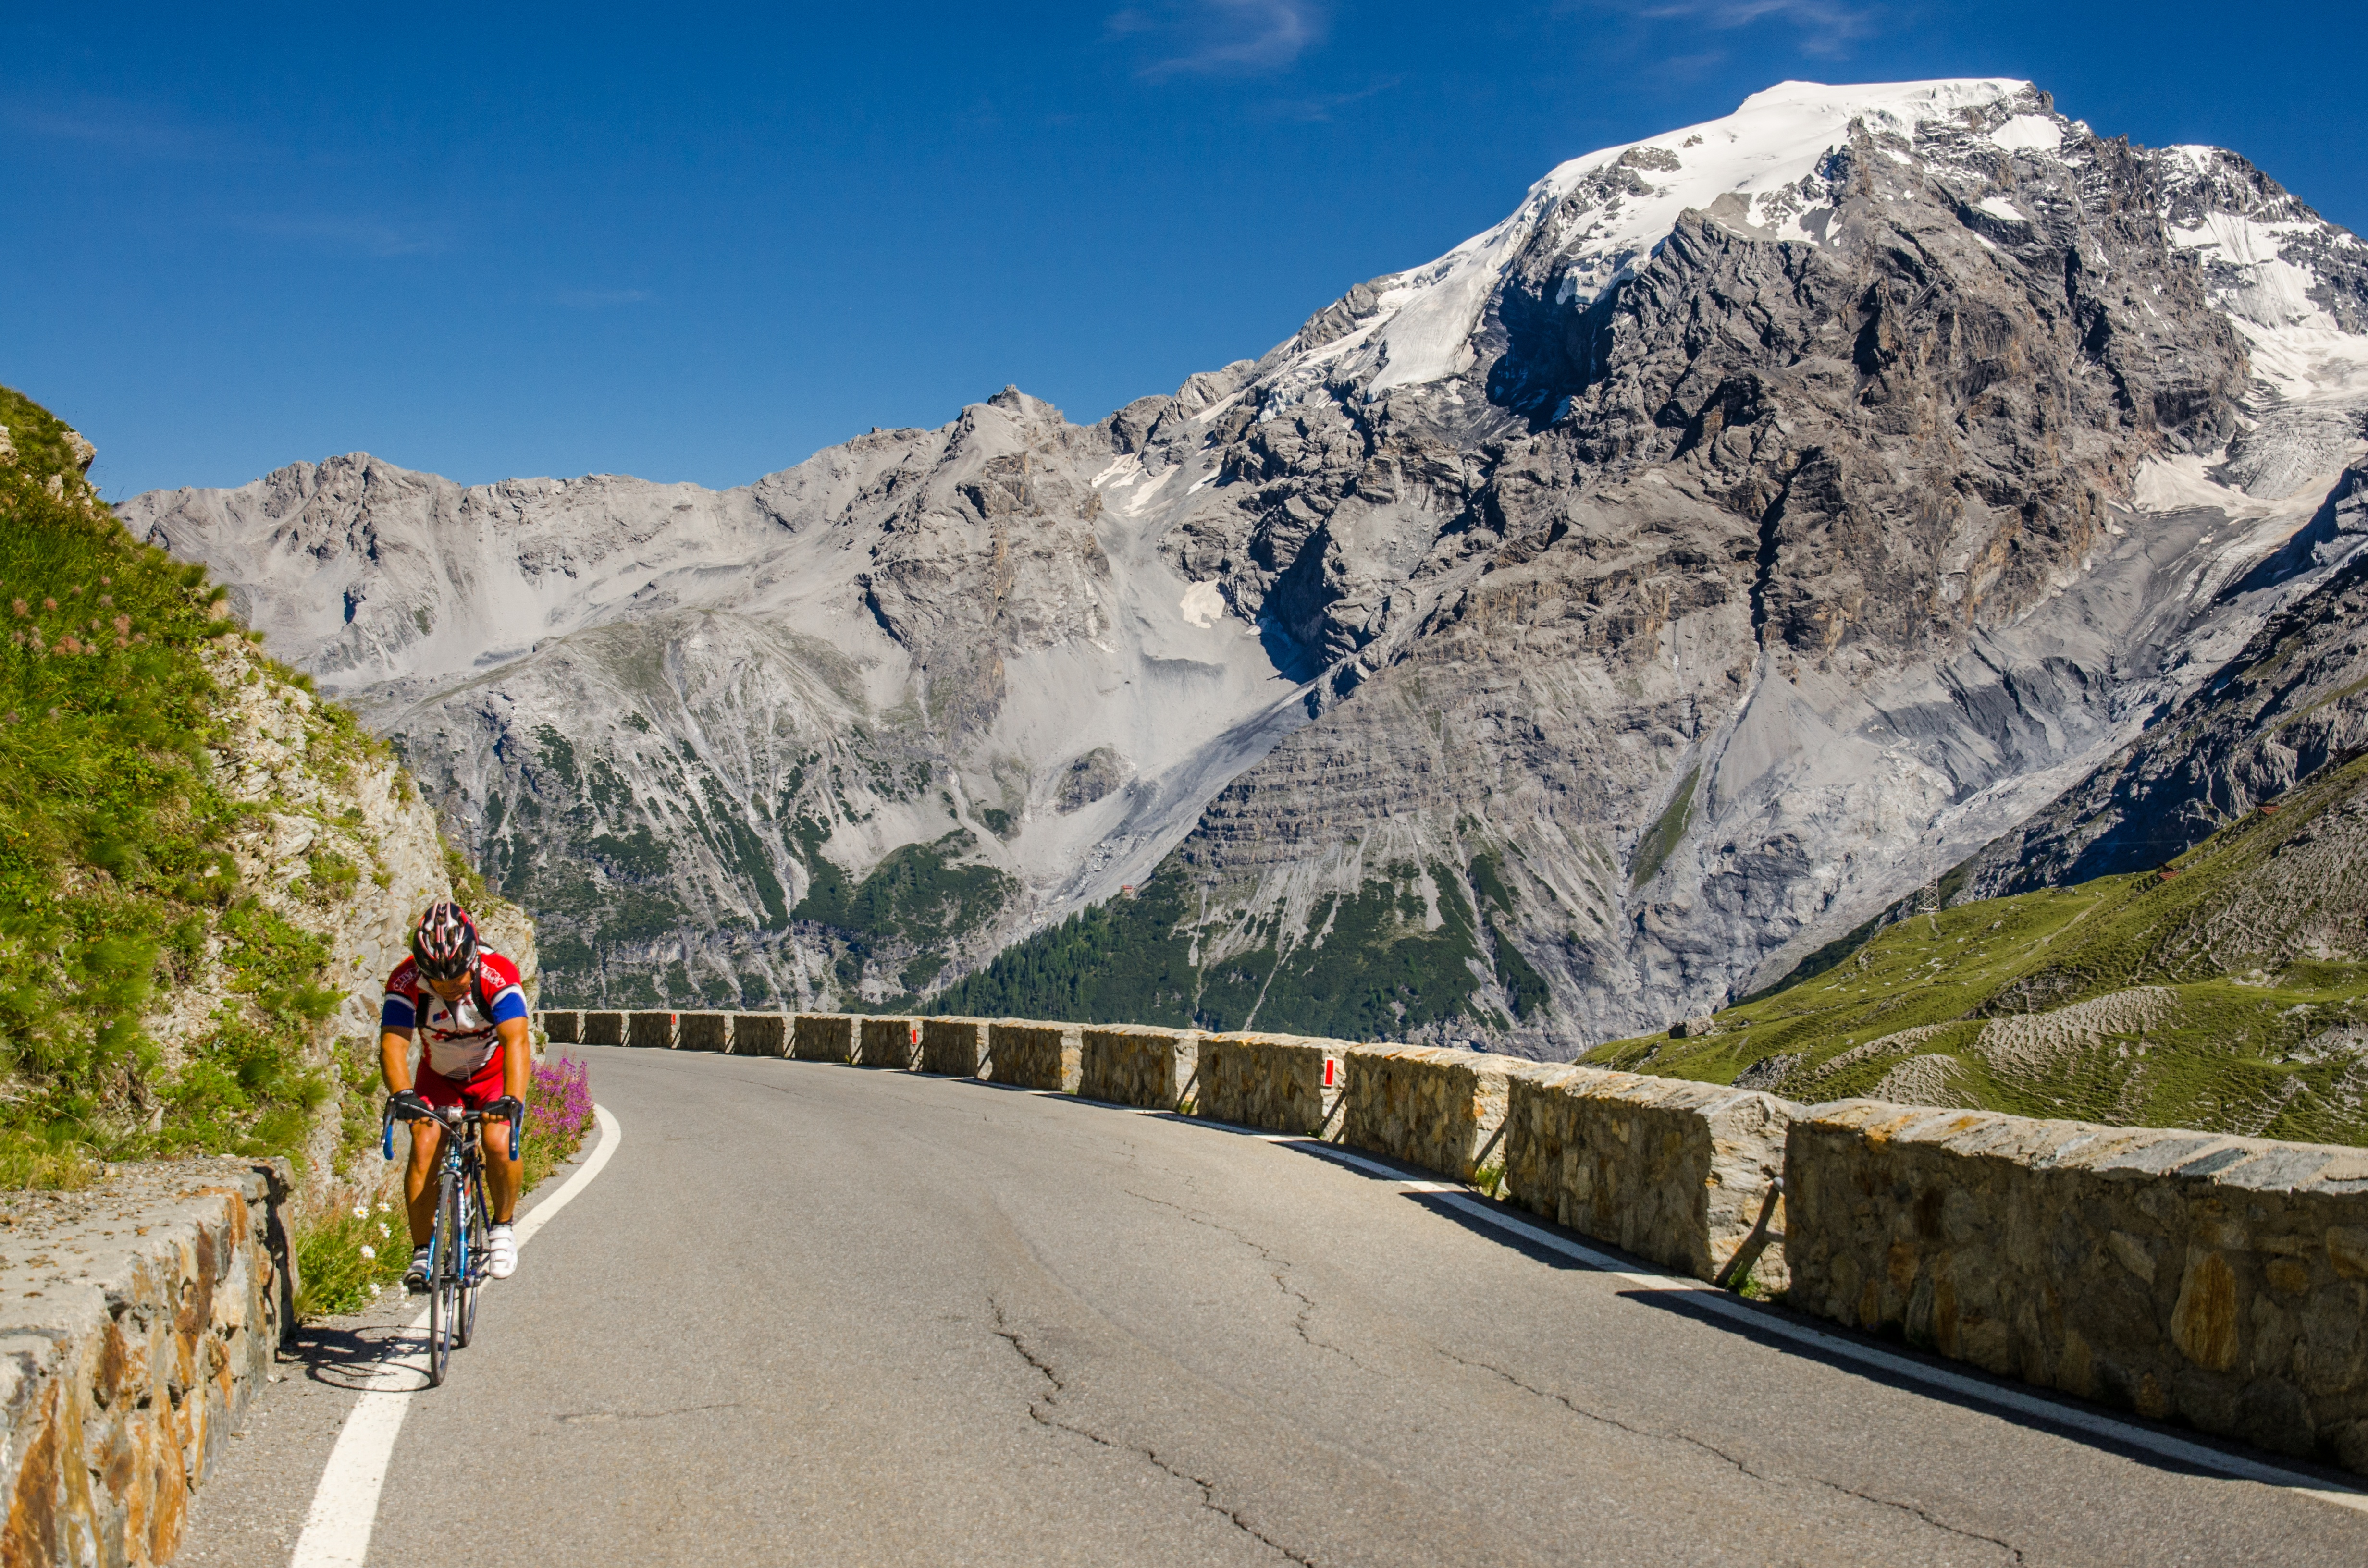 Cyclist_on_famous_Passo_dello_Stelvio_Swiss_Italy_border